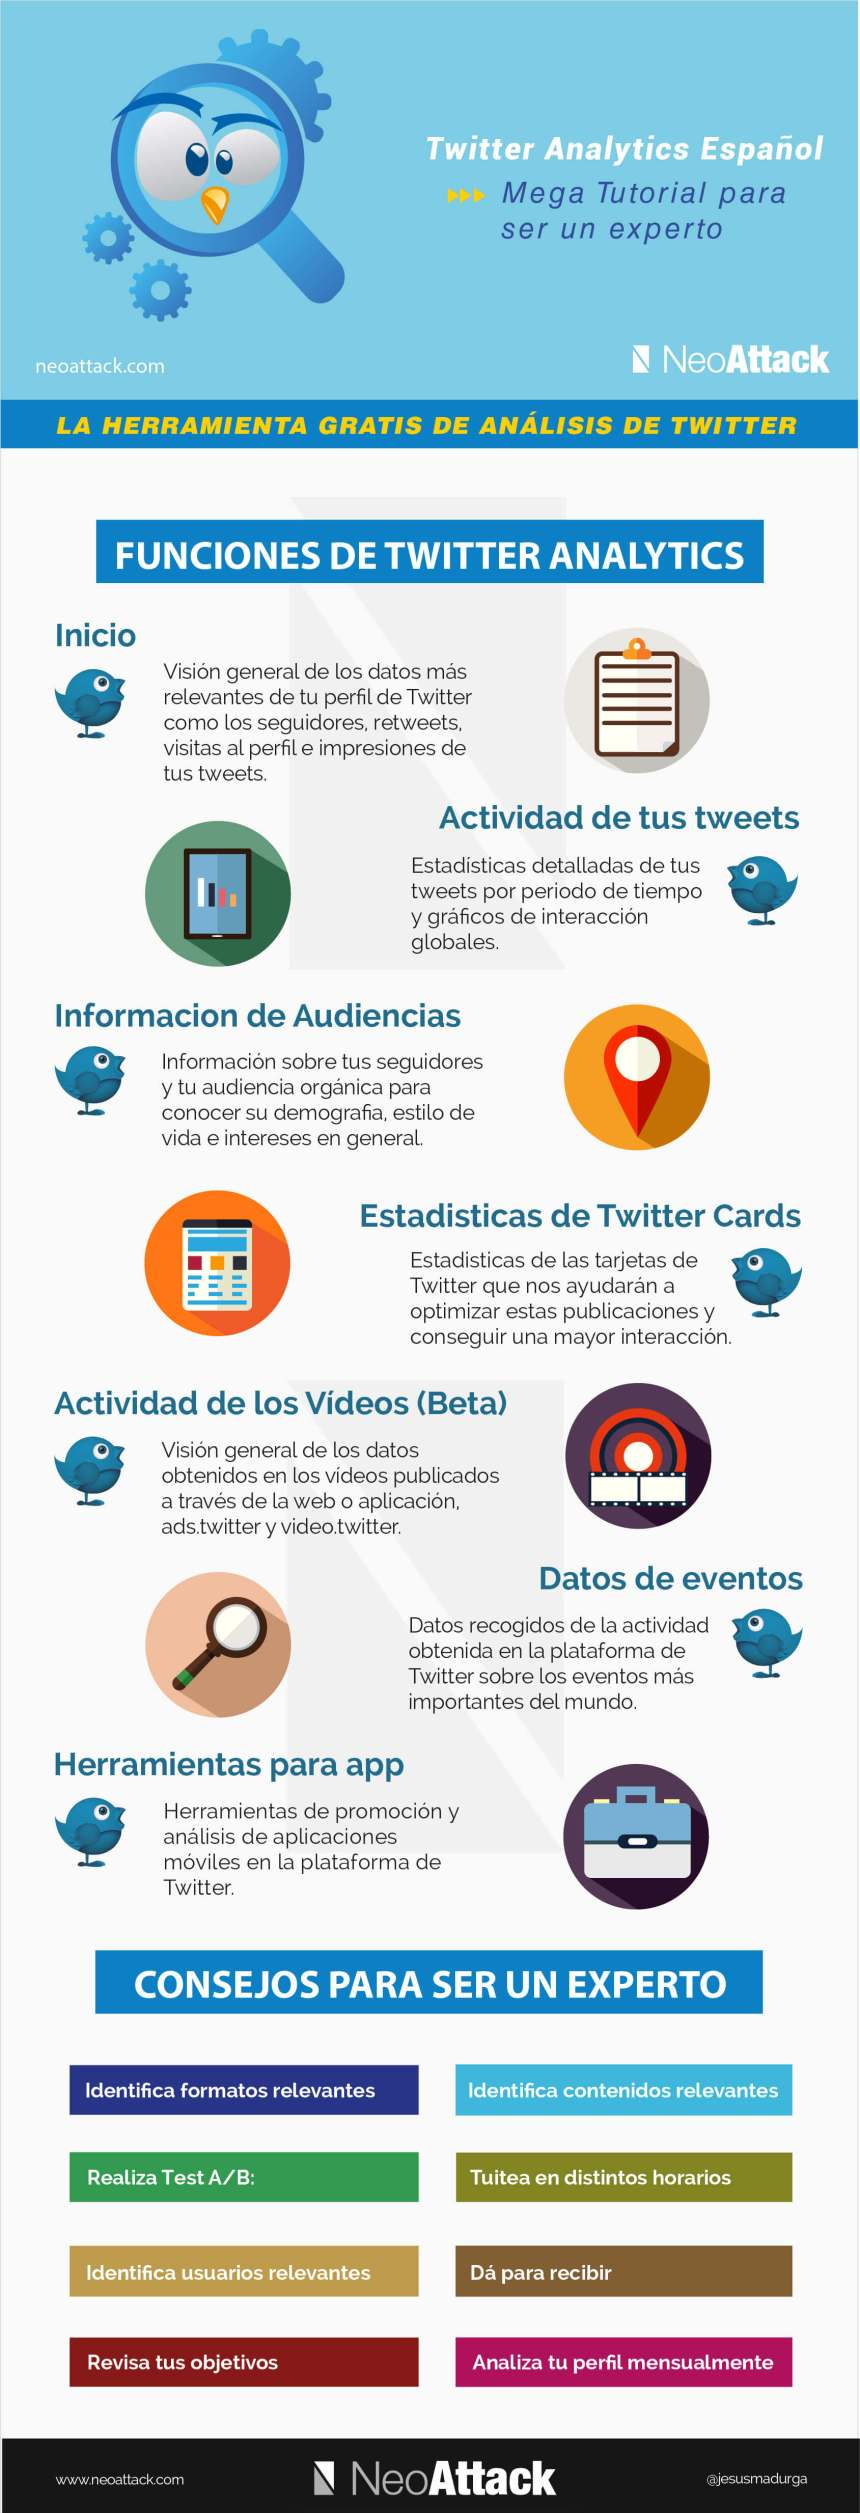 Twitter Analytics: todo lo que debes saber